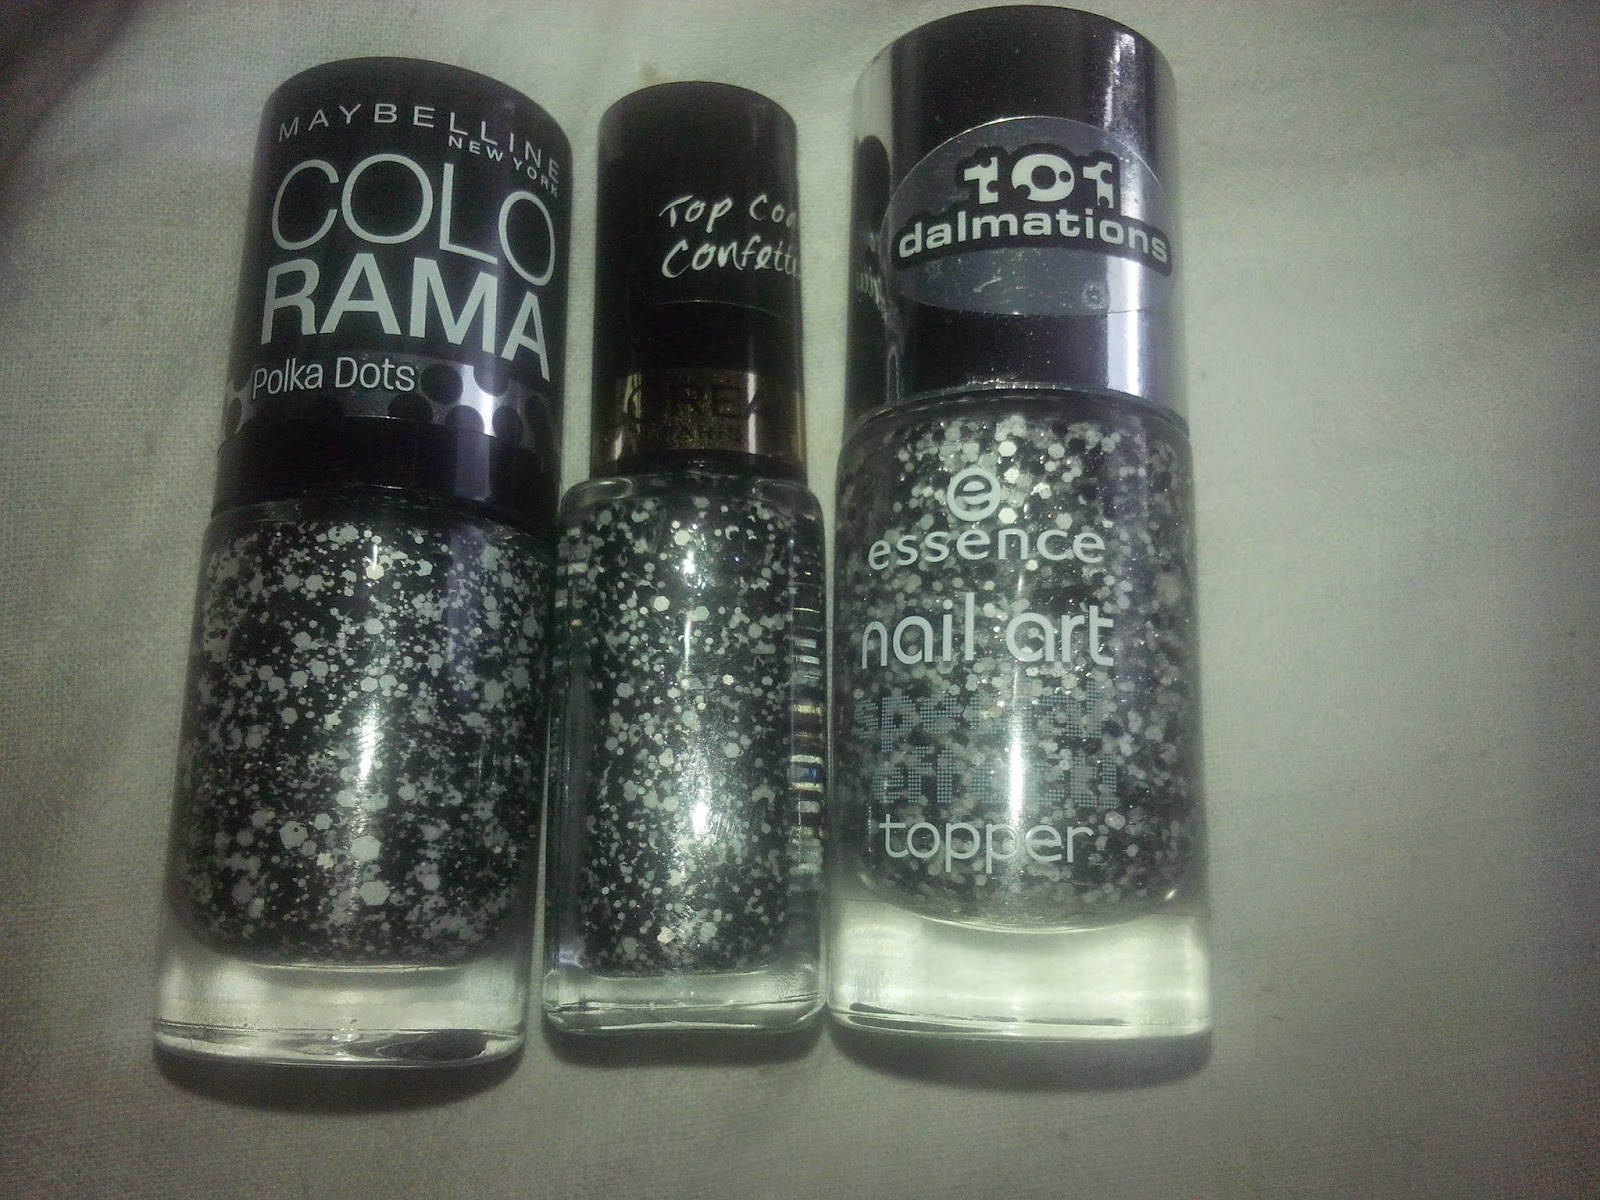 comparisson-exxence-black-dress-white-tie-maybelline-clearly-spotted-loreal-confettis